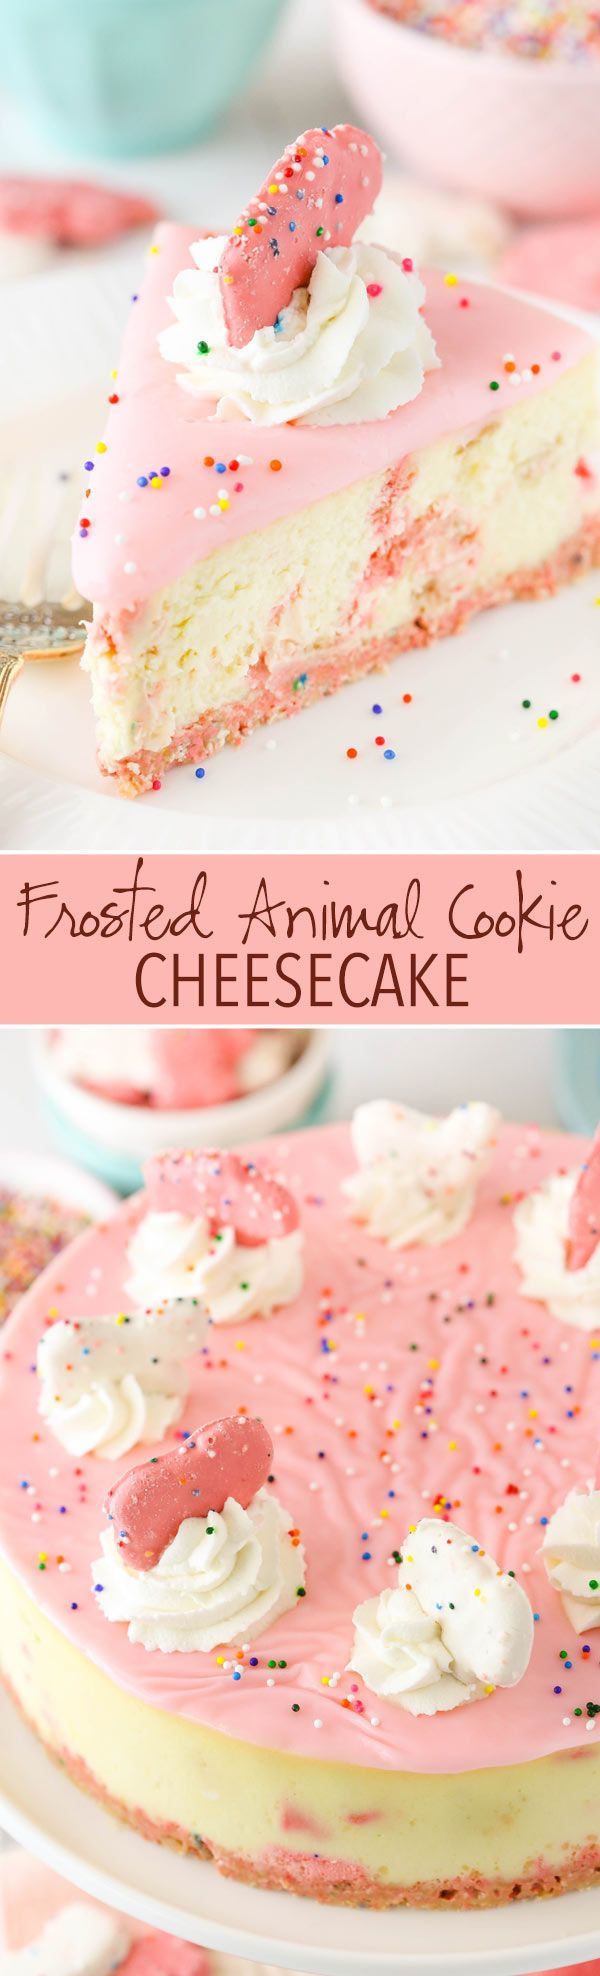 Frosted Animal Cookie Cheesecake - Life, Love & Sugar - thick and cream vanilla cheesecake with frosted animal cookies in the crust and the filling! So good!